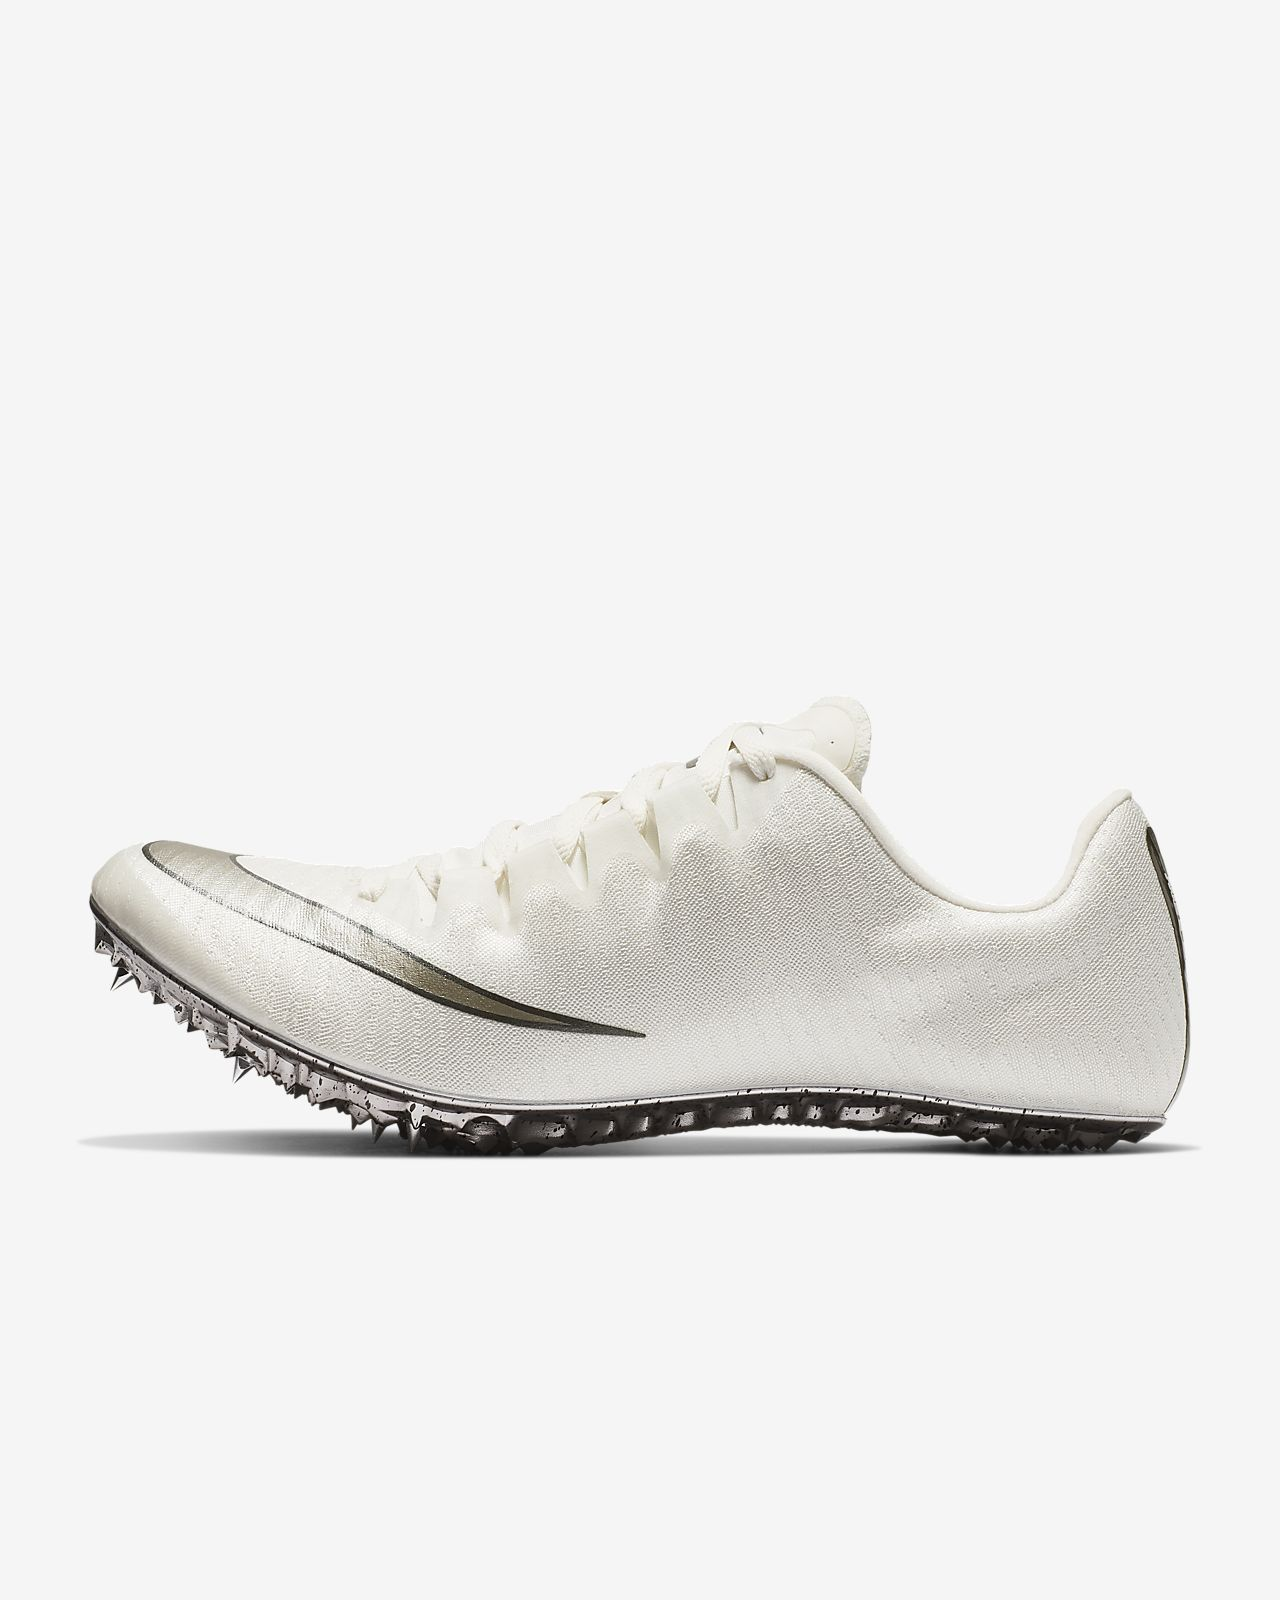 buy popular 09fda 90b23 ... Chaussure de course à pointes Nike Superfly Elite